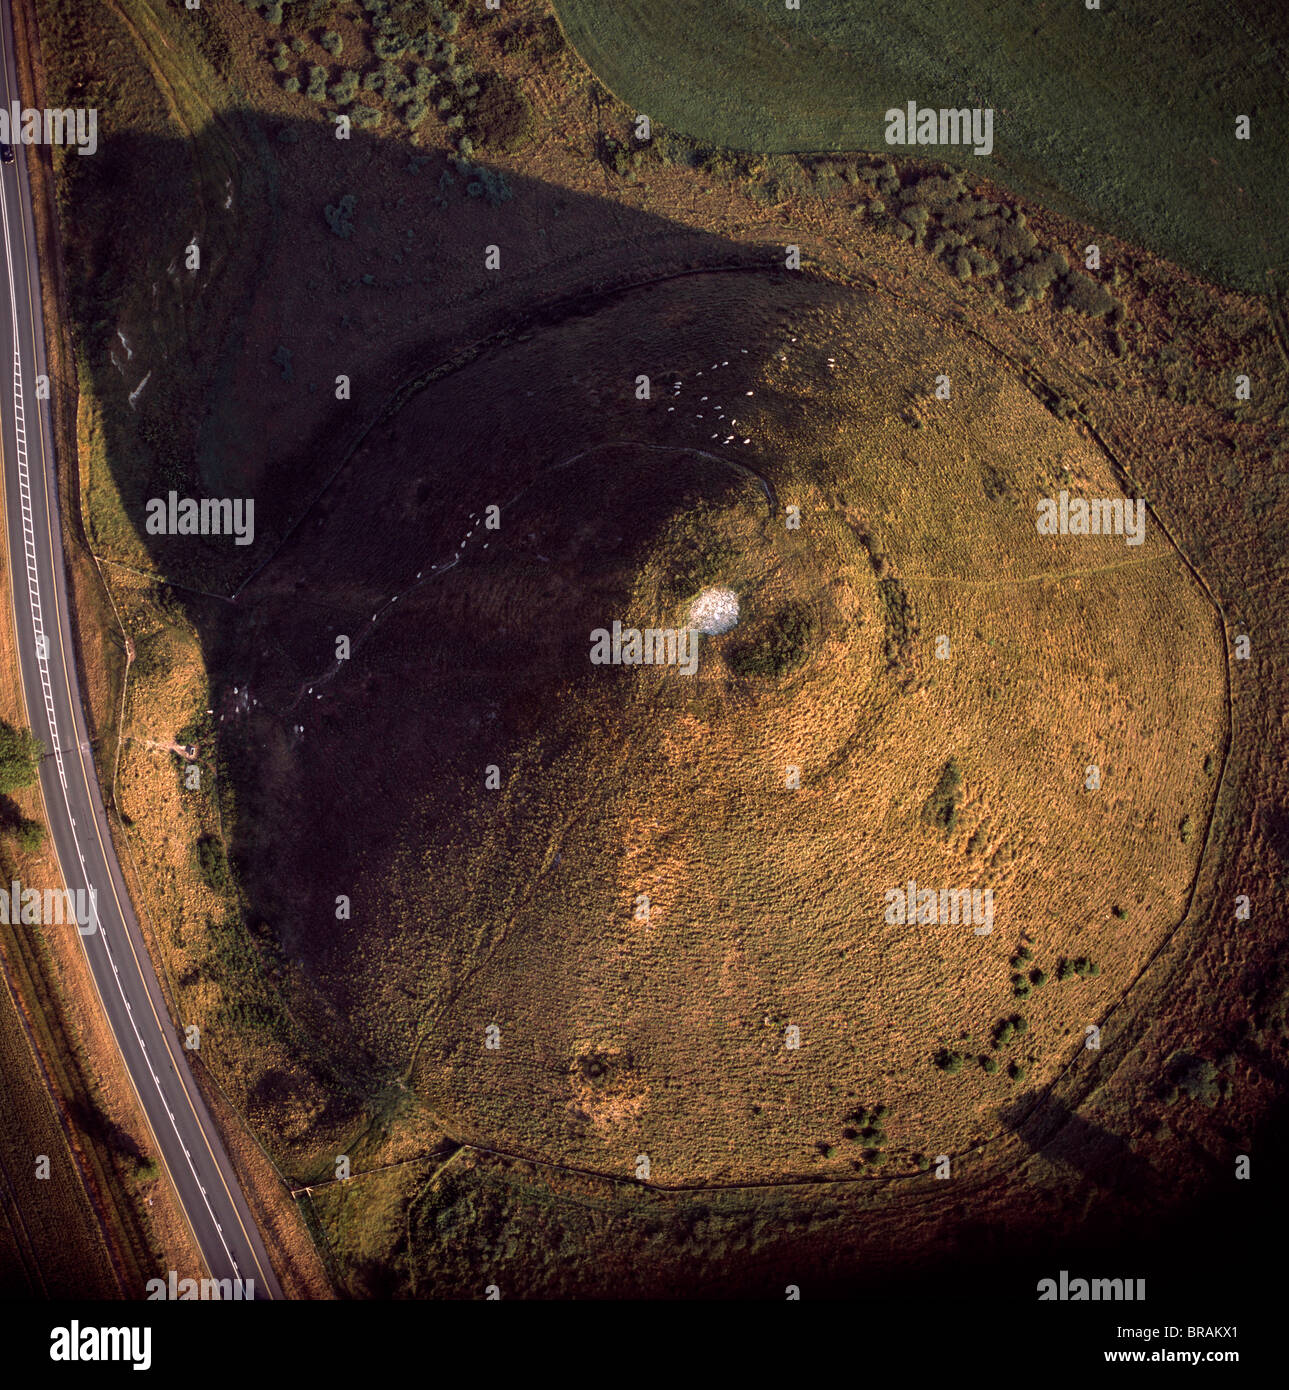 Aerial image of Silbury Hill, a prehistoric human-made chalk and clay mound near Avebury, UNESCO, Wiltshire, England, - Stock Image